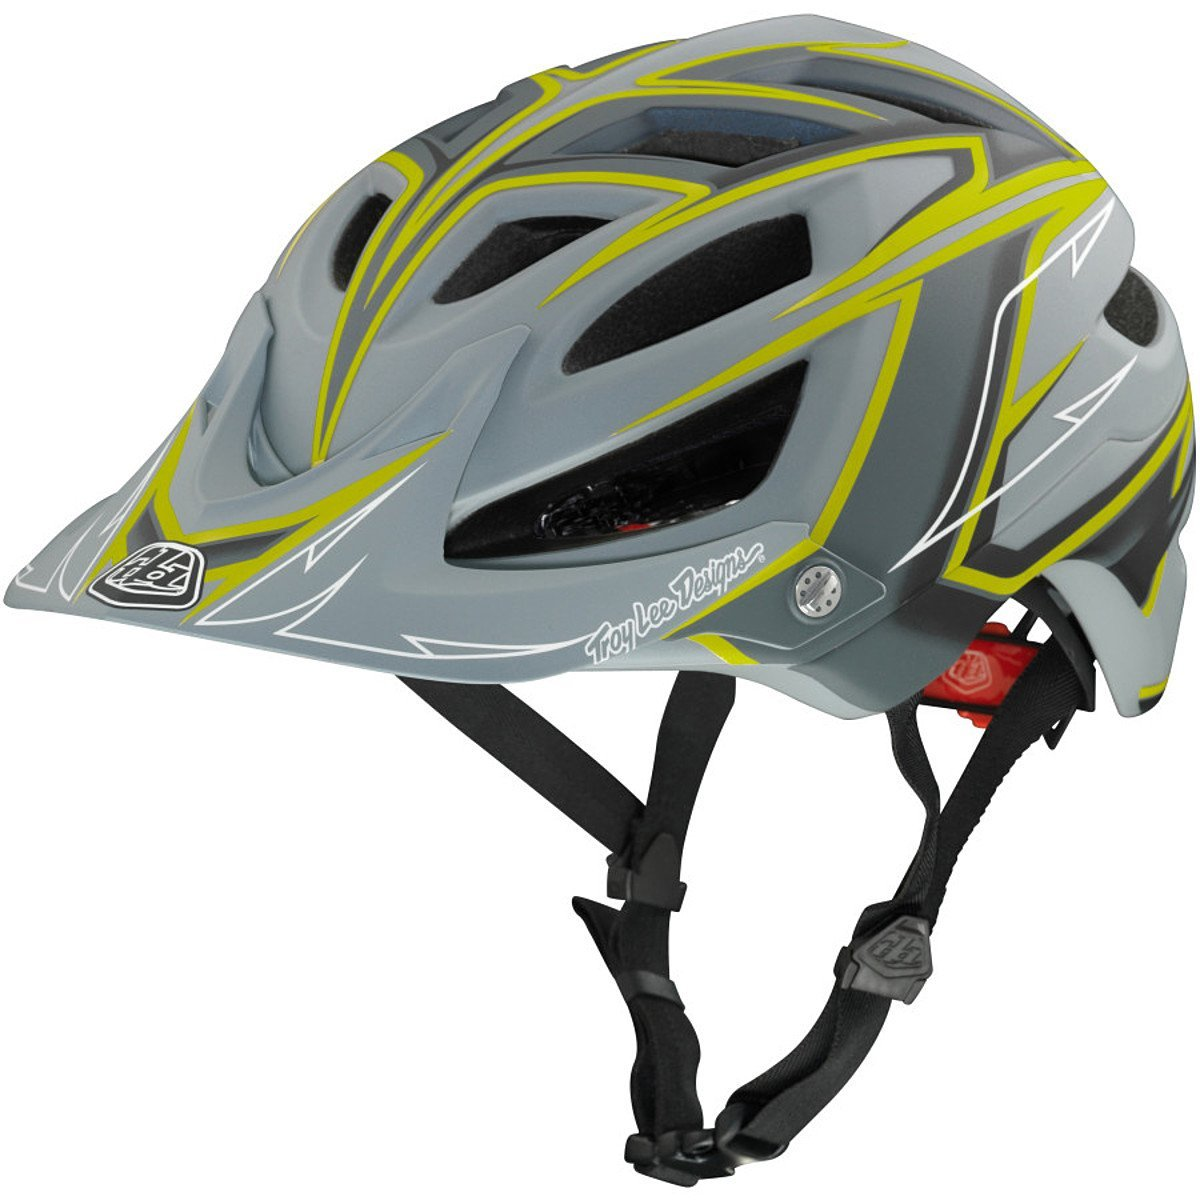 Small Troy Lee Designs Bicycle Helmets